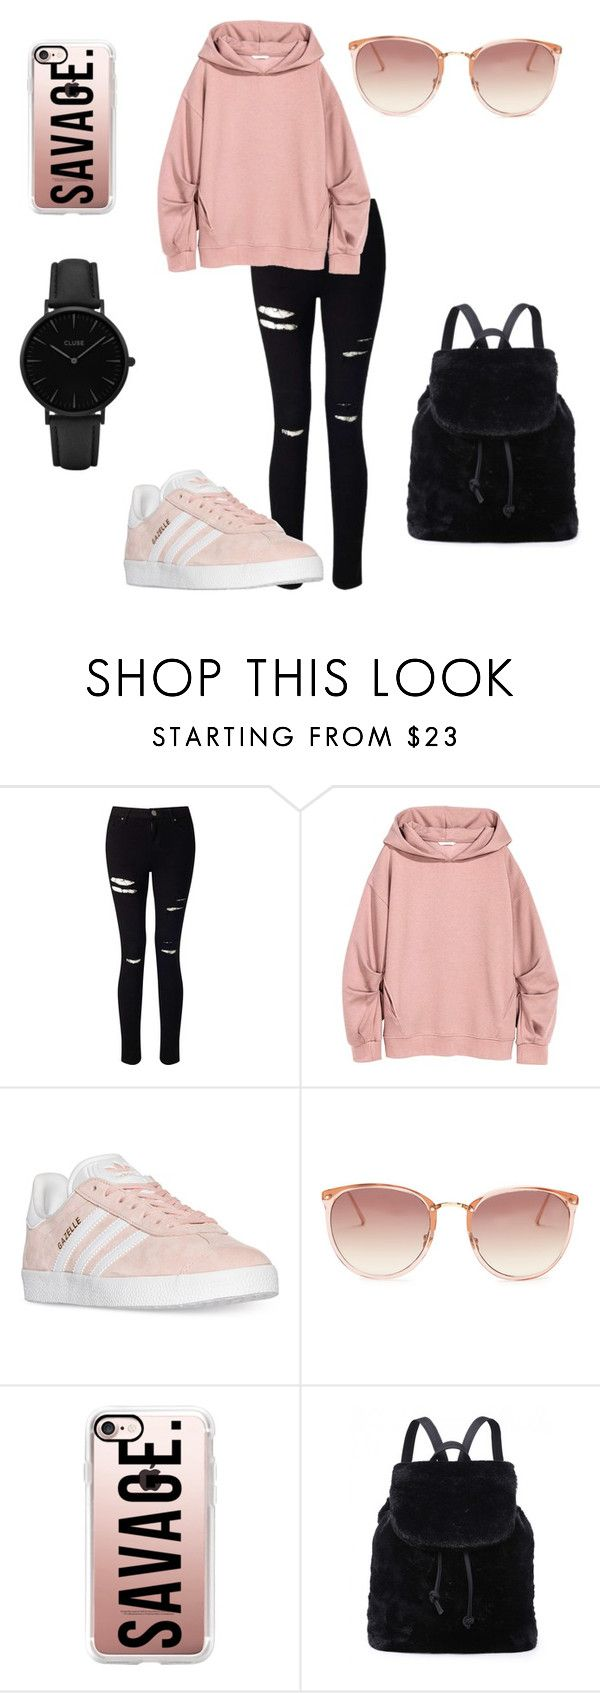 """Pink urban style "" by dsslv ❤ liked on Polyvore featuring Miss Selfridge, adidas, Linda Farrow, Casetify and CLUSE"